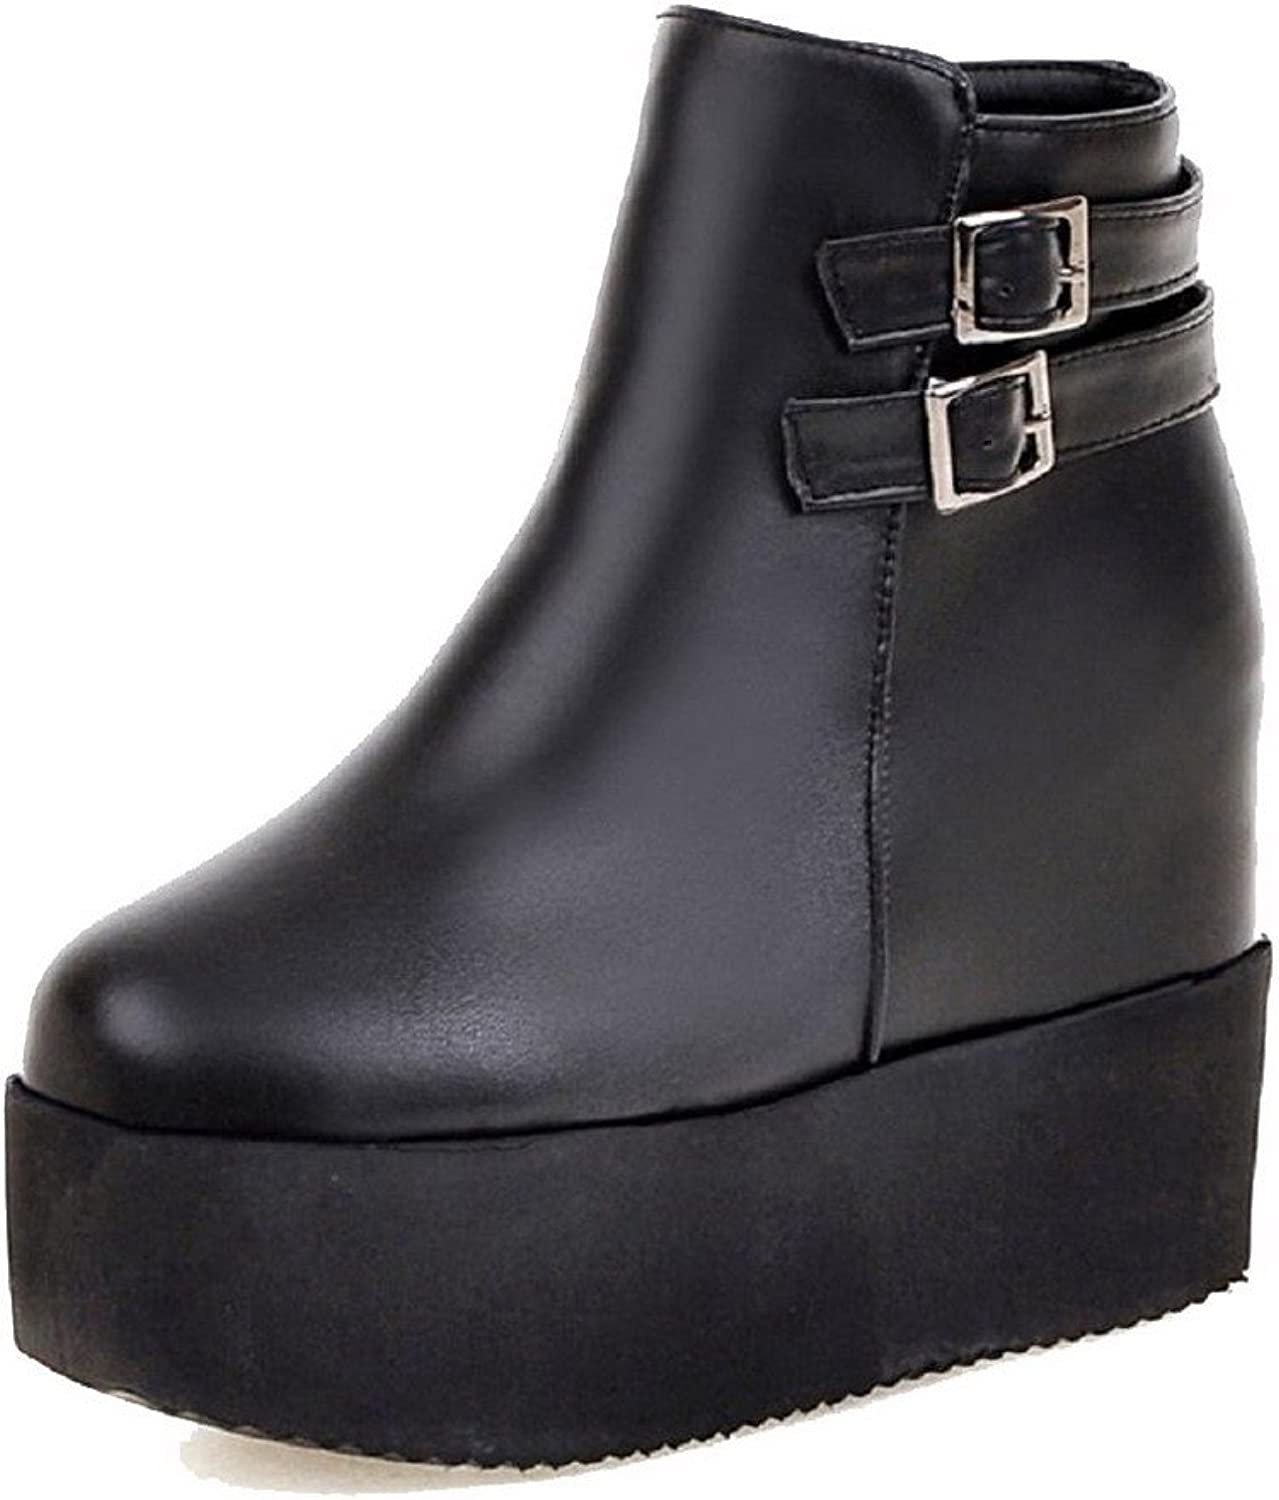 WeiPoot Women's Round Closed Toe High Heels Soft Material Low-Top Solid Boots